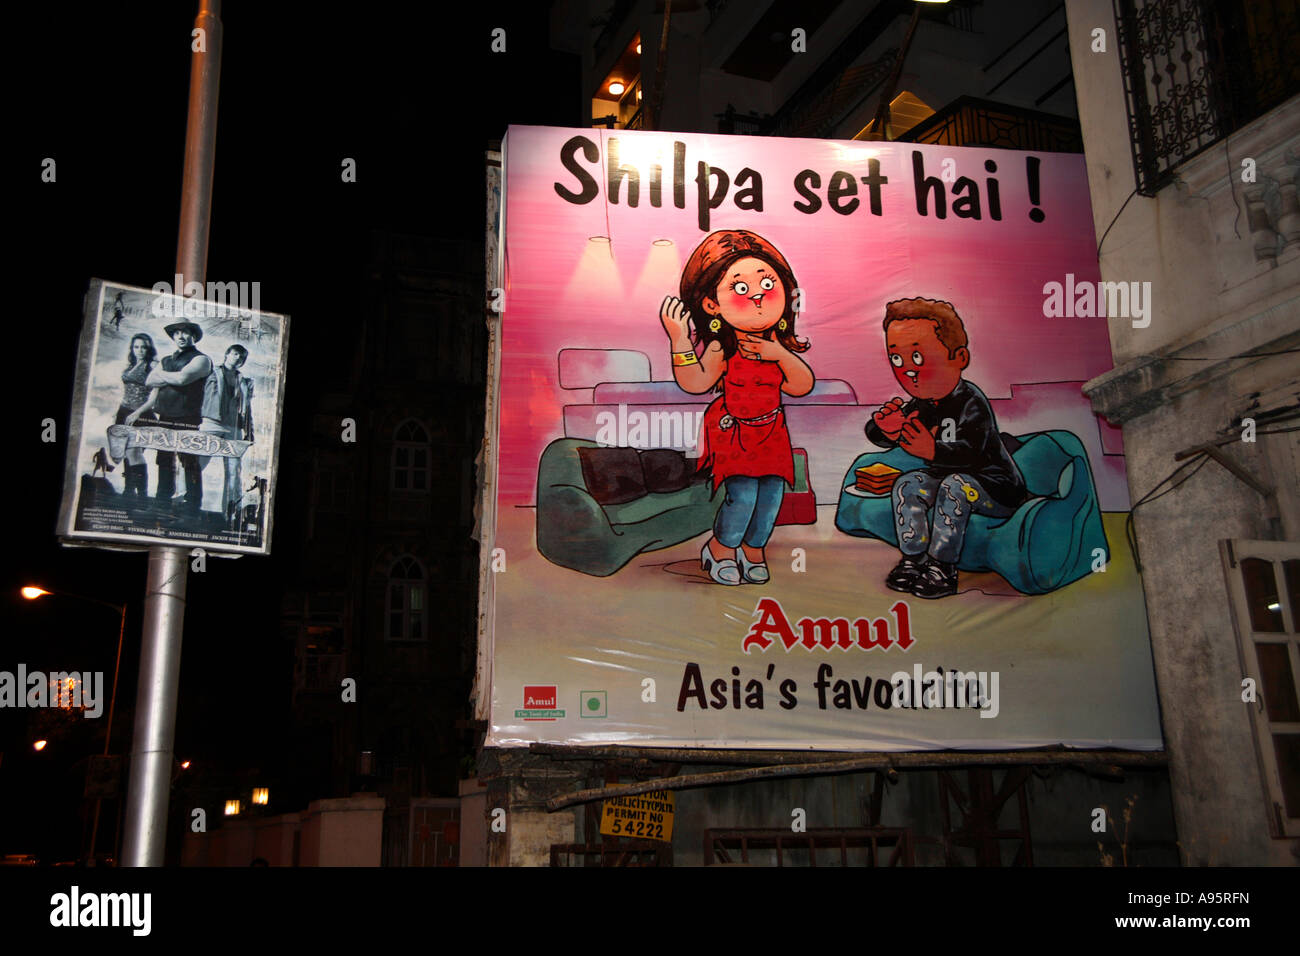 Mumbai Billboard with Shilpa Shetty after her Celebrity Big Brother appearance in the UK, Mumbai, India - Stock Image